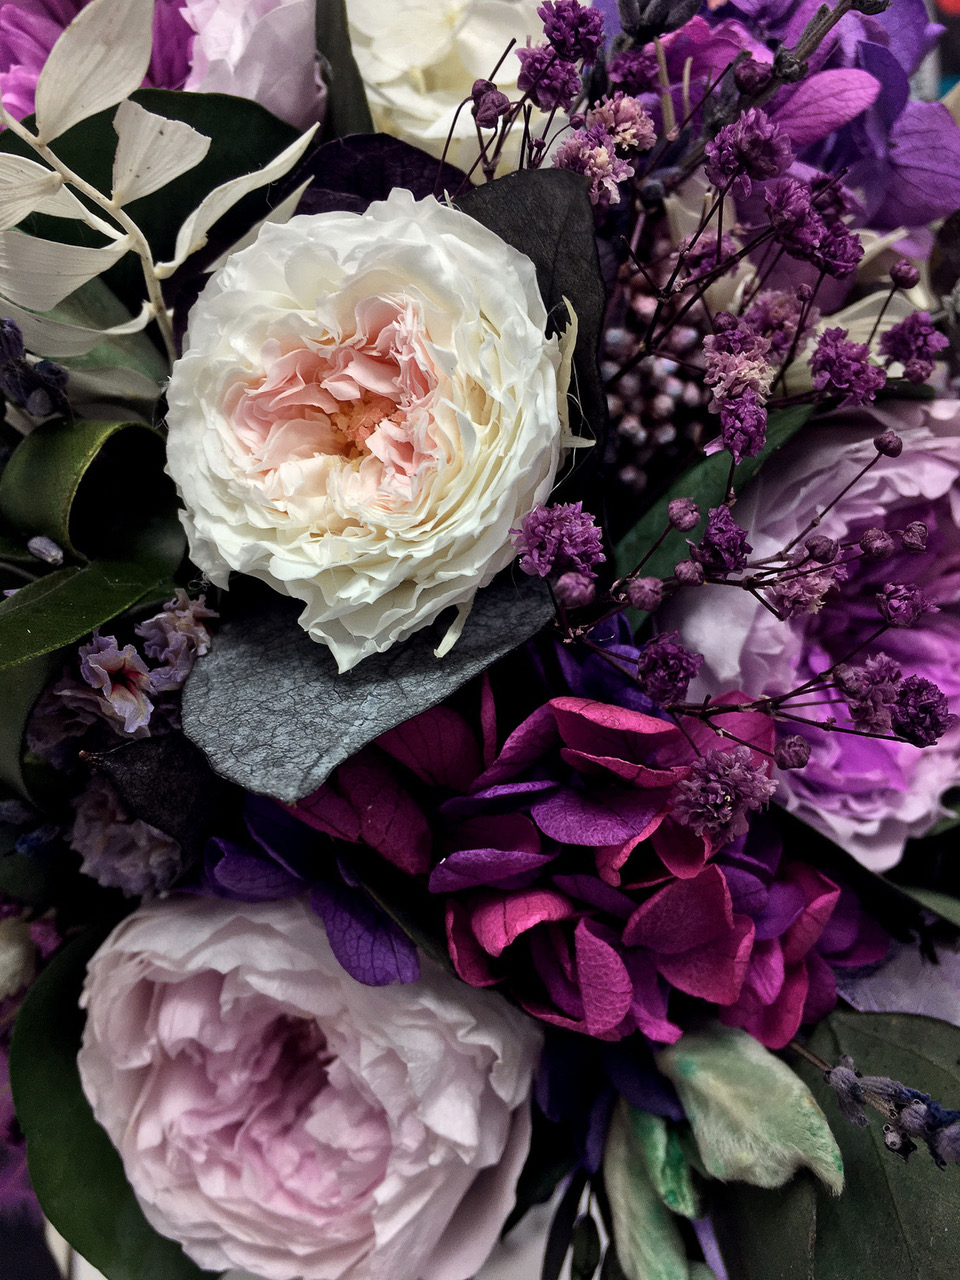 Beautiful bouquet of preserved flowers hydrangea, eucalyptus, purple and white peony roses. Dried flowers. Bouquet of spring flowers.